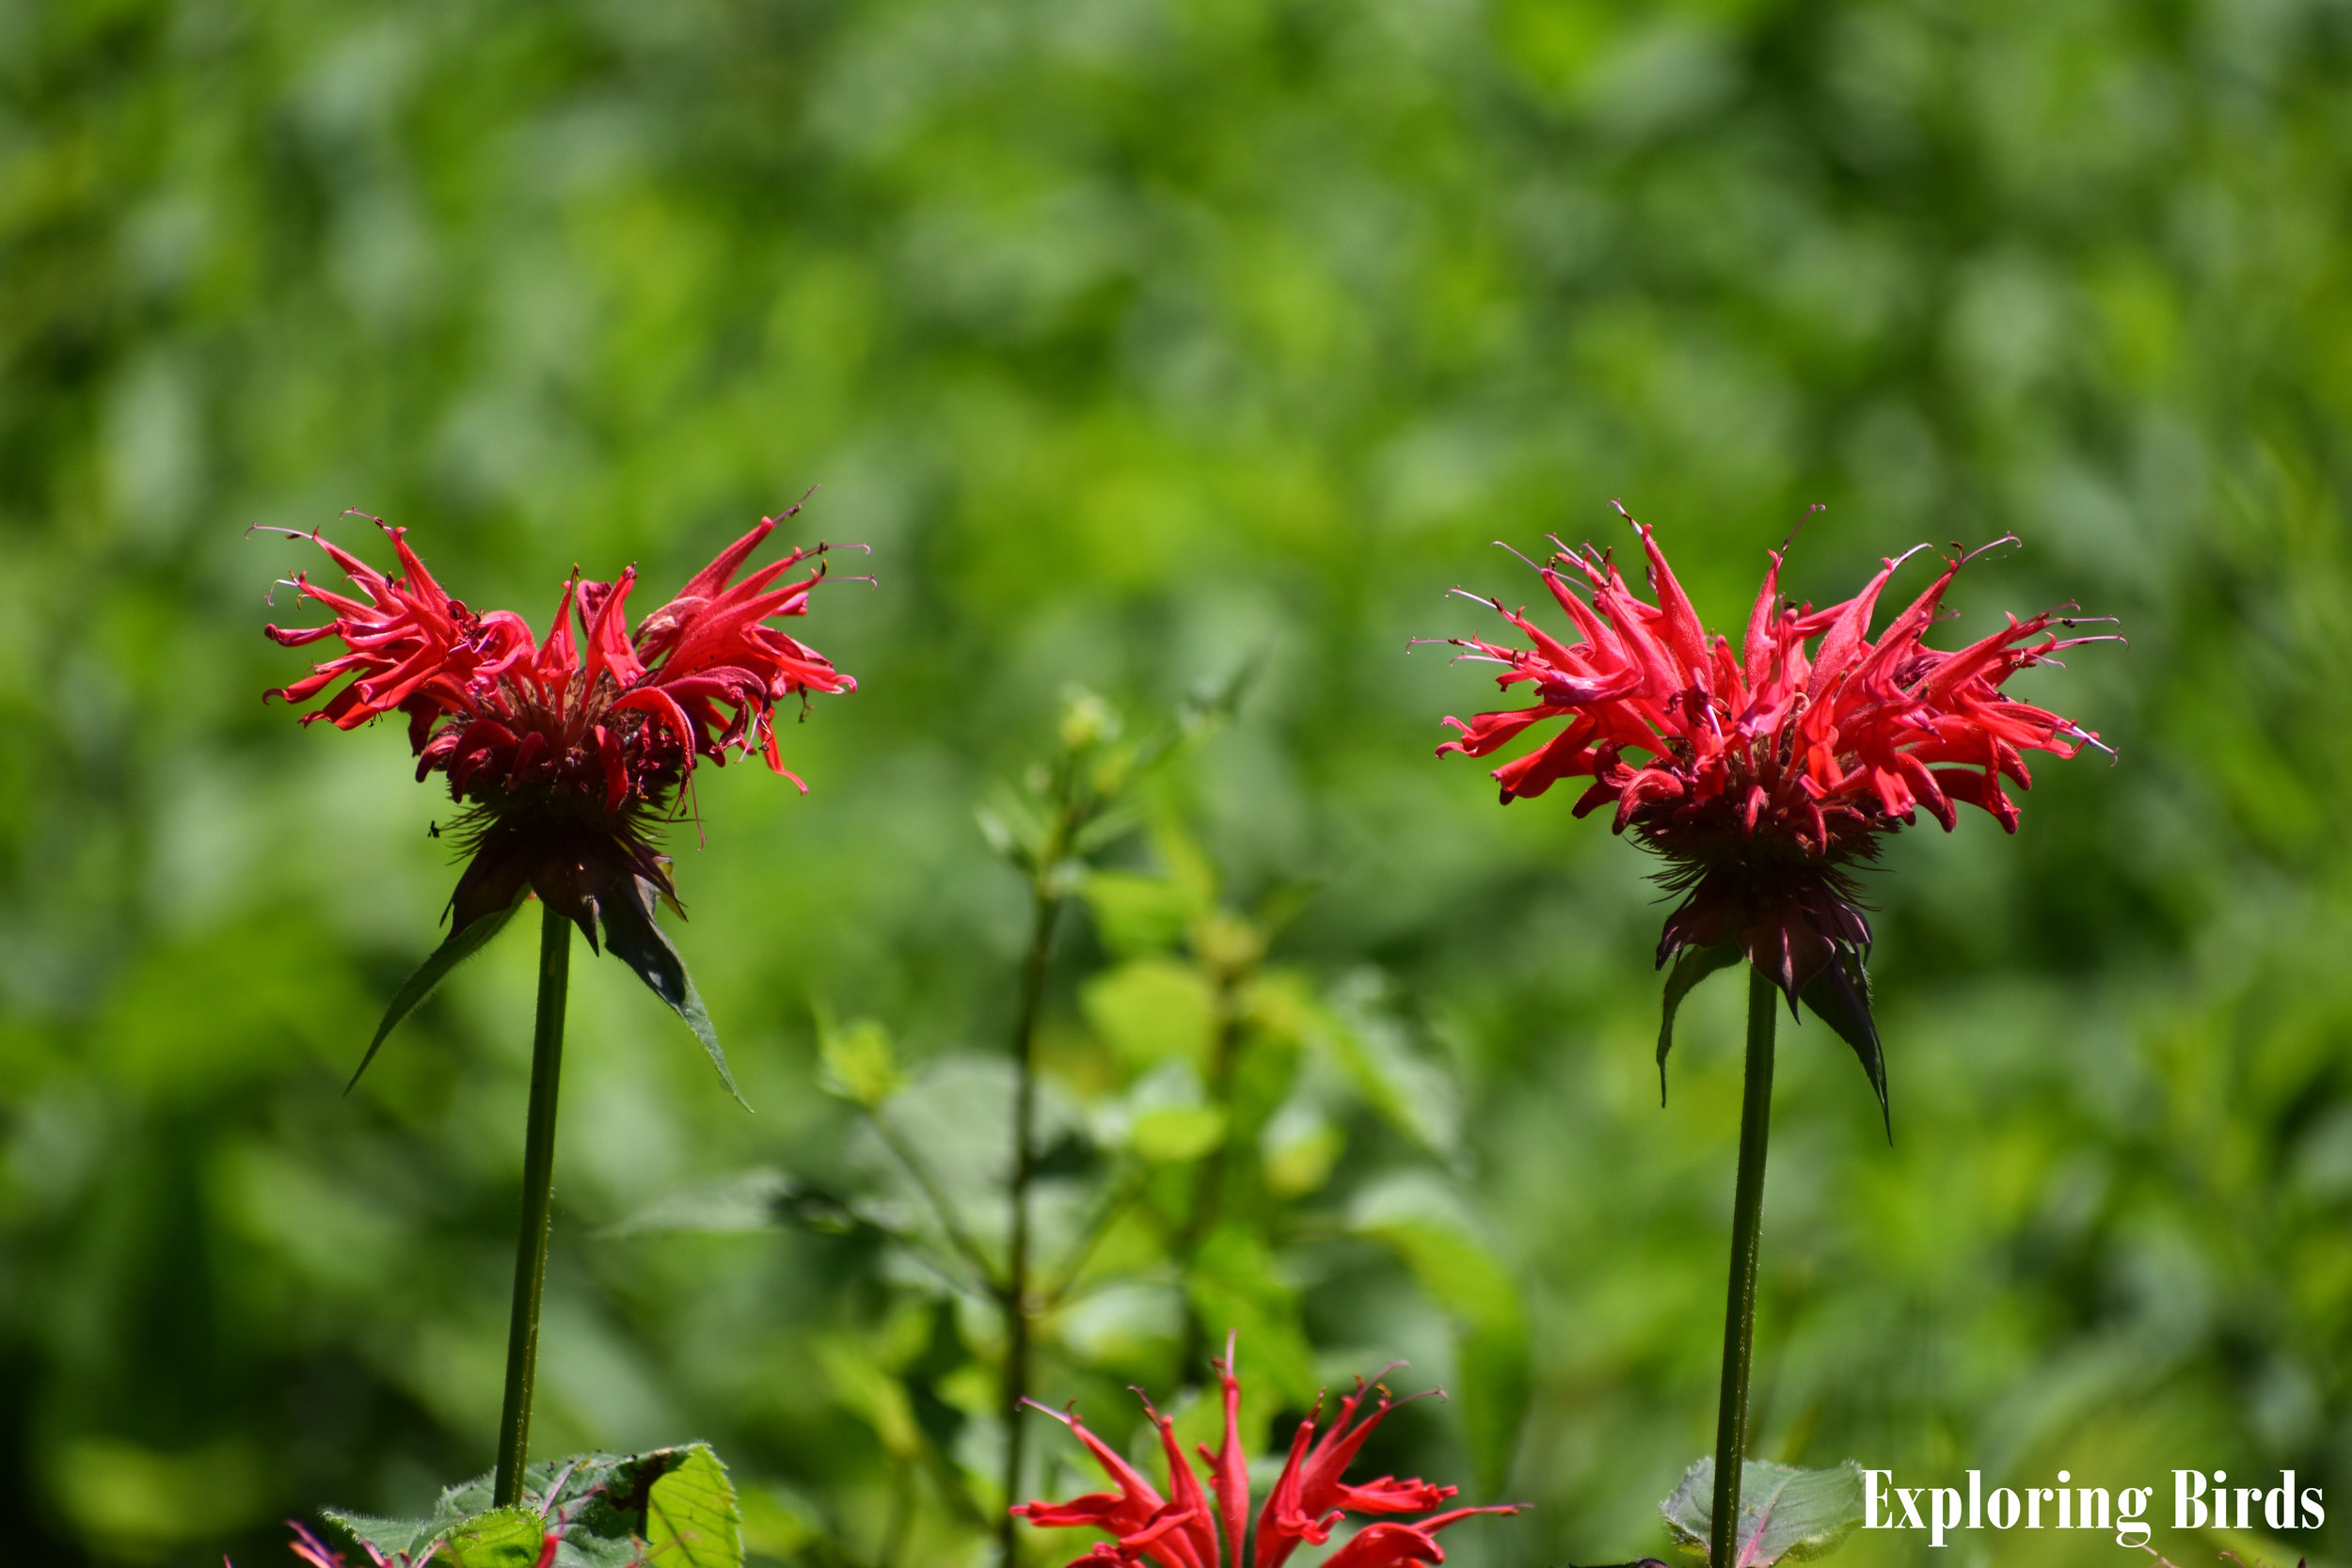 Bee Balm is a flower that attracts hummingbirds